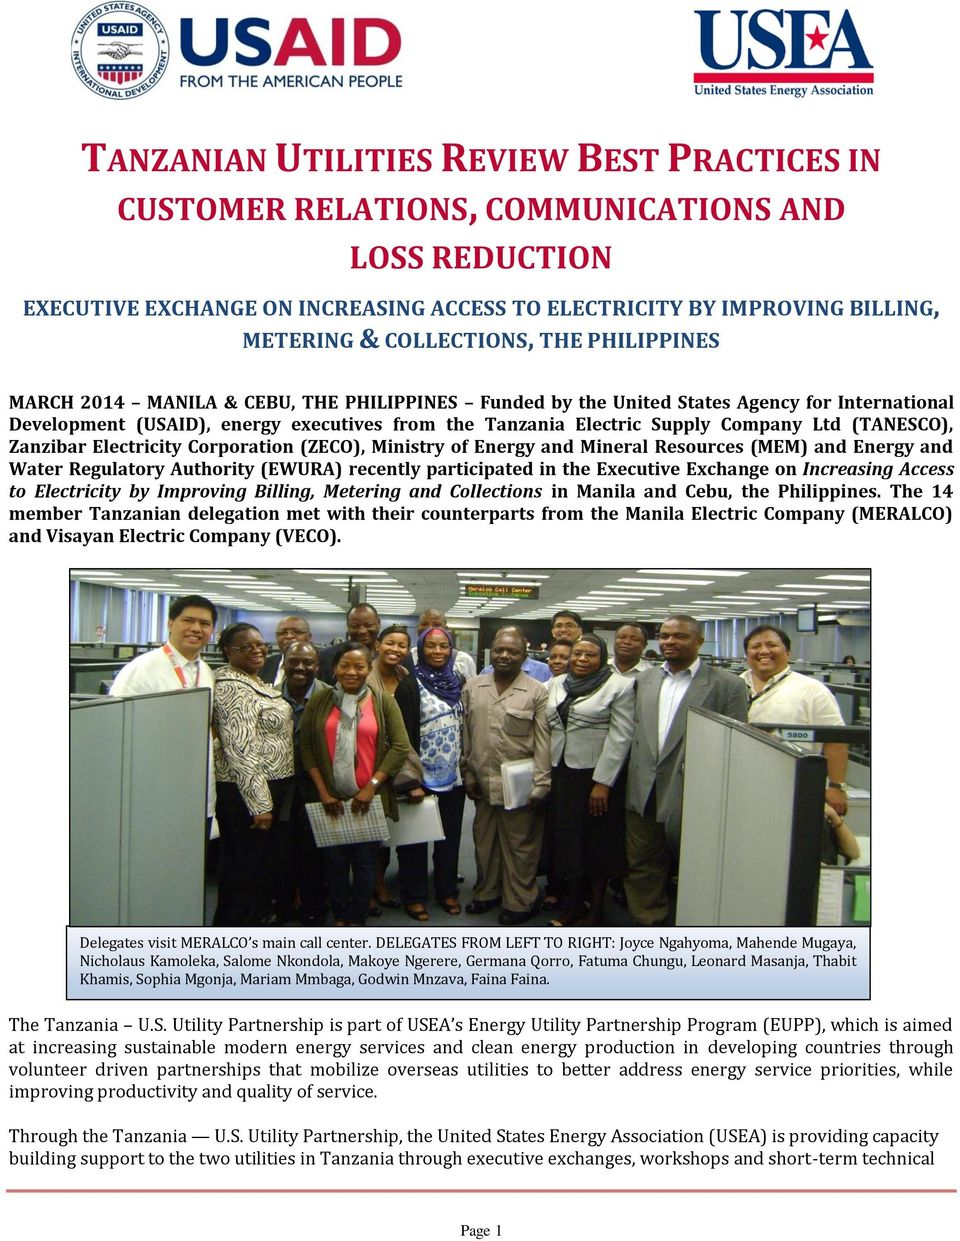 TANZANIAN UTILITIES REVIEW BEST PRACTICES IN - PDF